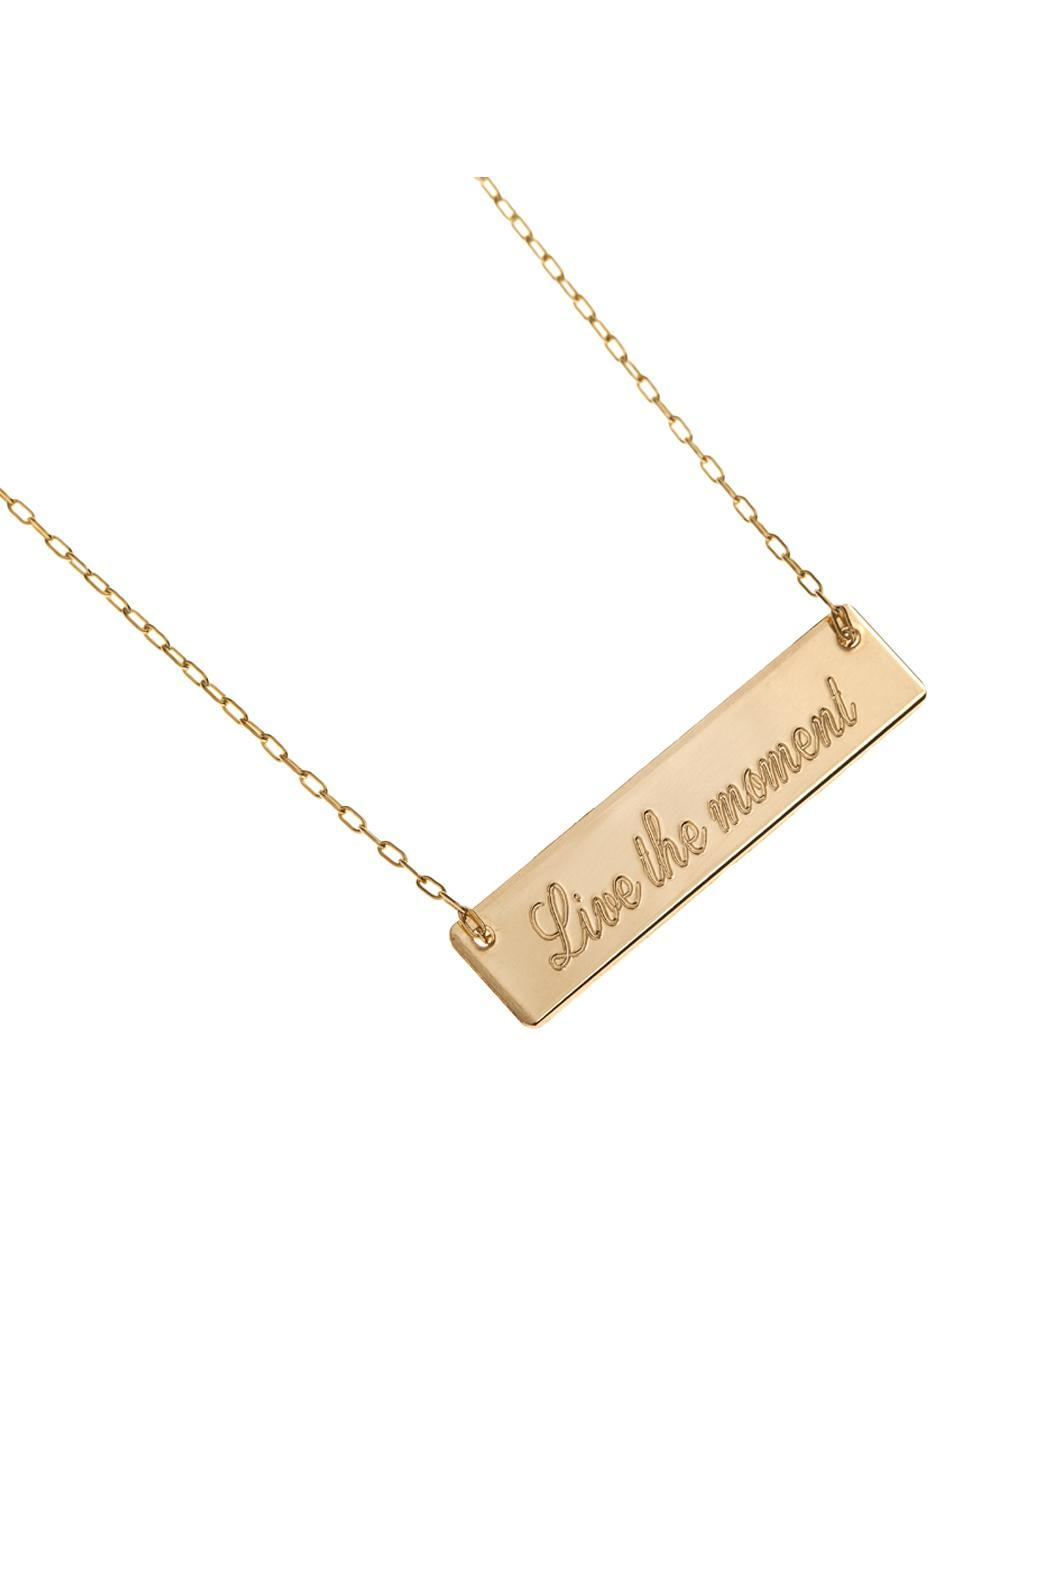 Just Believe Jewelry Plaque Necklace - Main Image